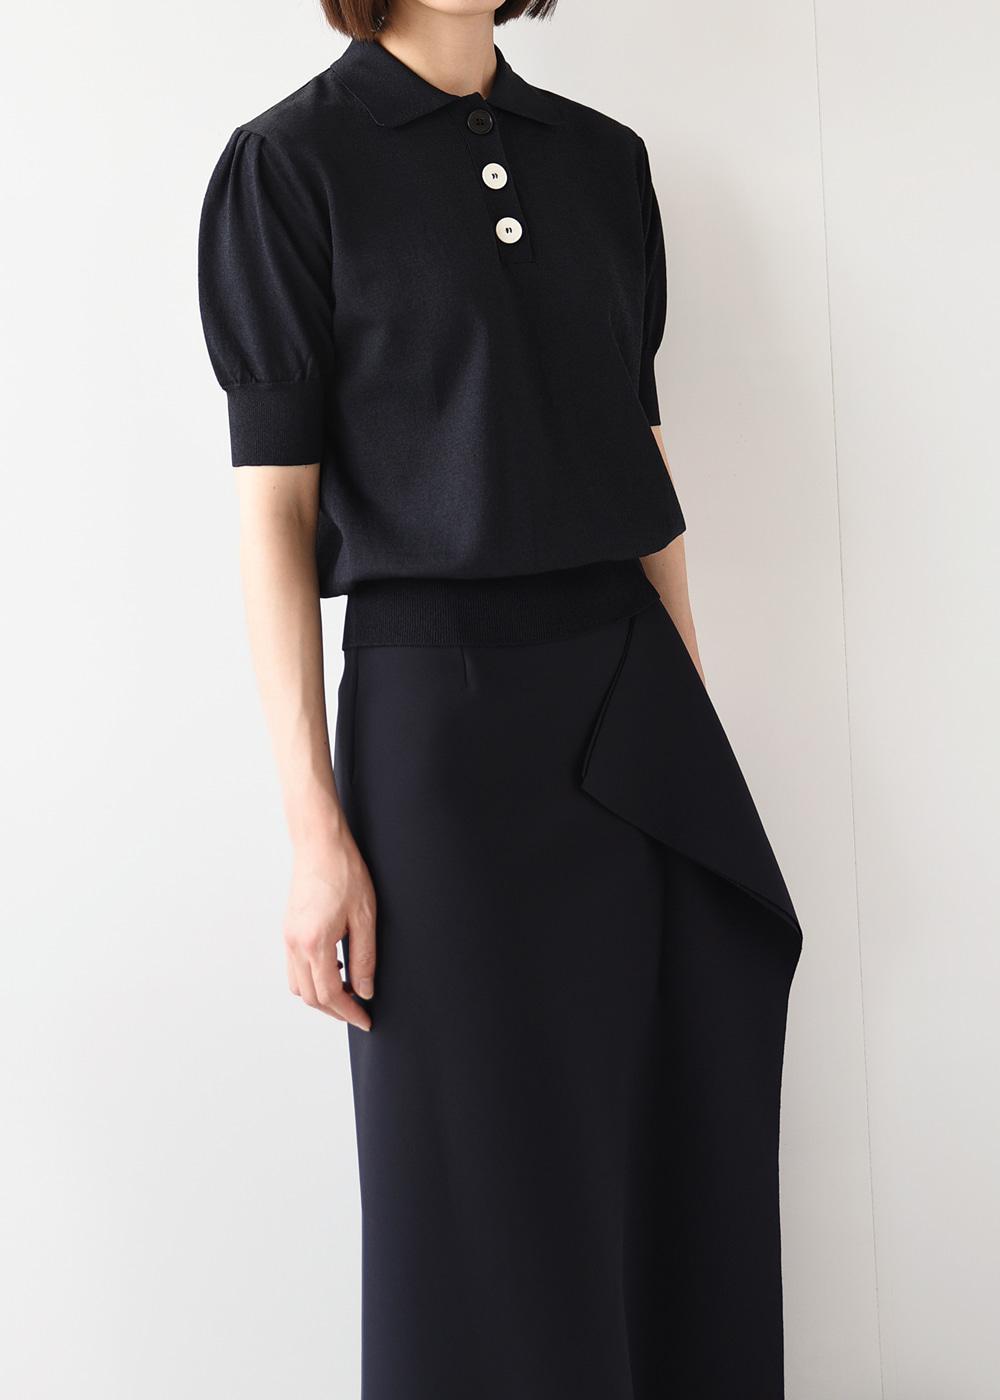 Button Collar Knit